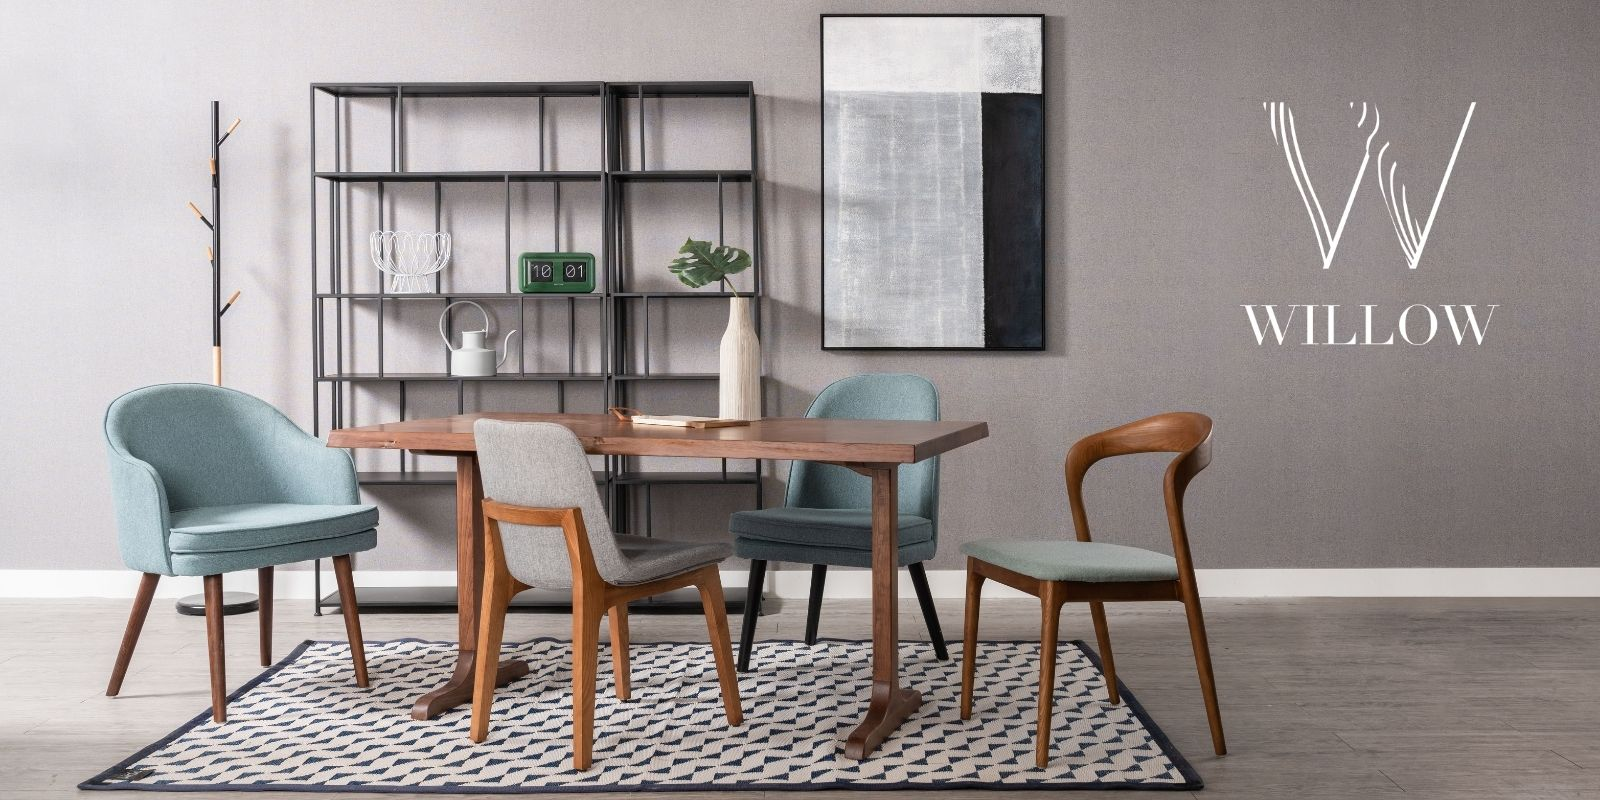 solid wood dining chair, solid wood frame sofa, Scandinavian interior design, contemporary interior design